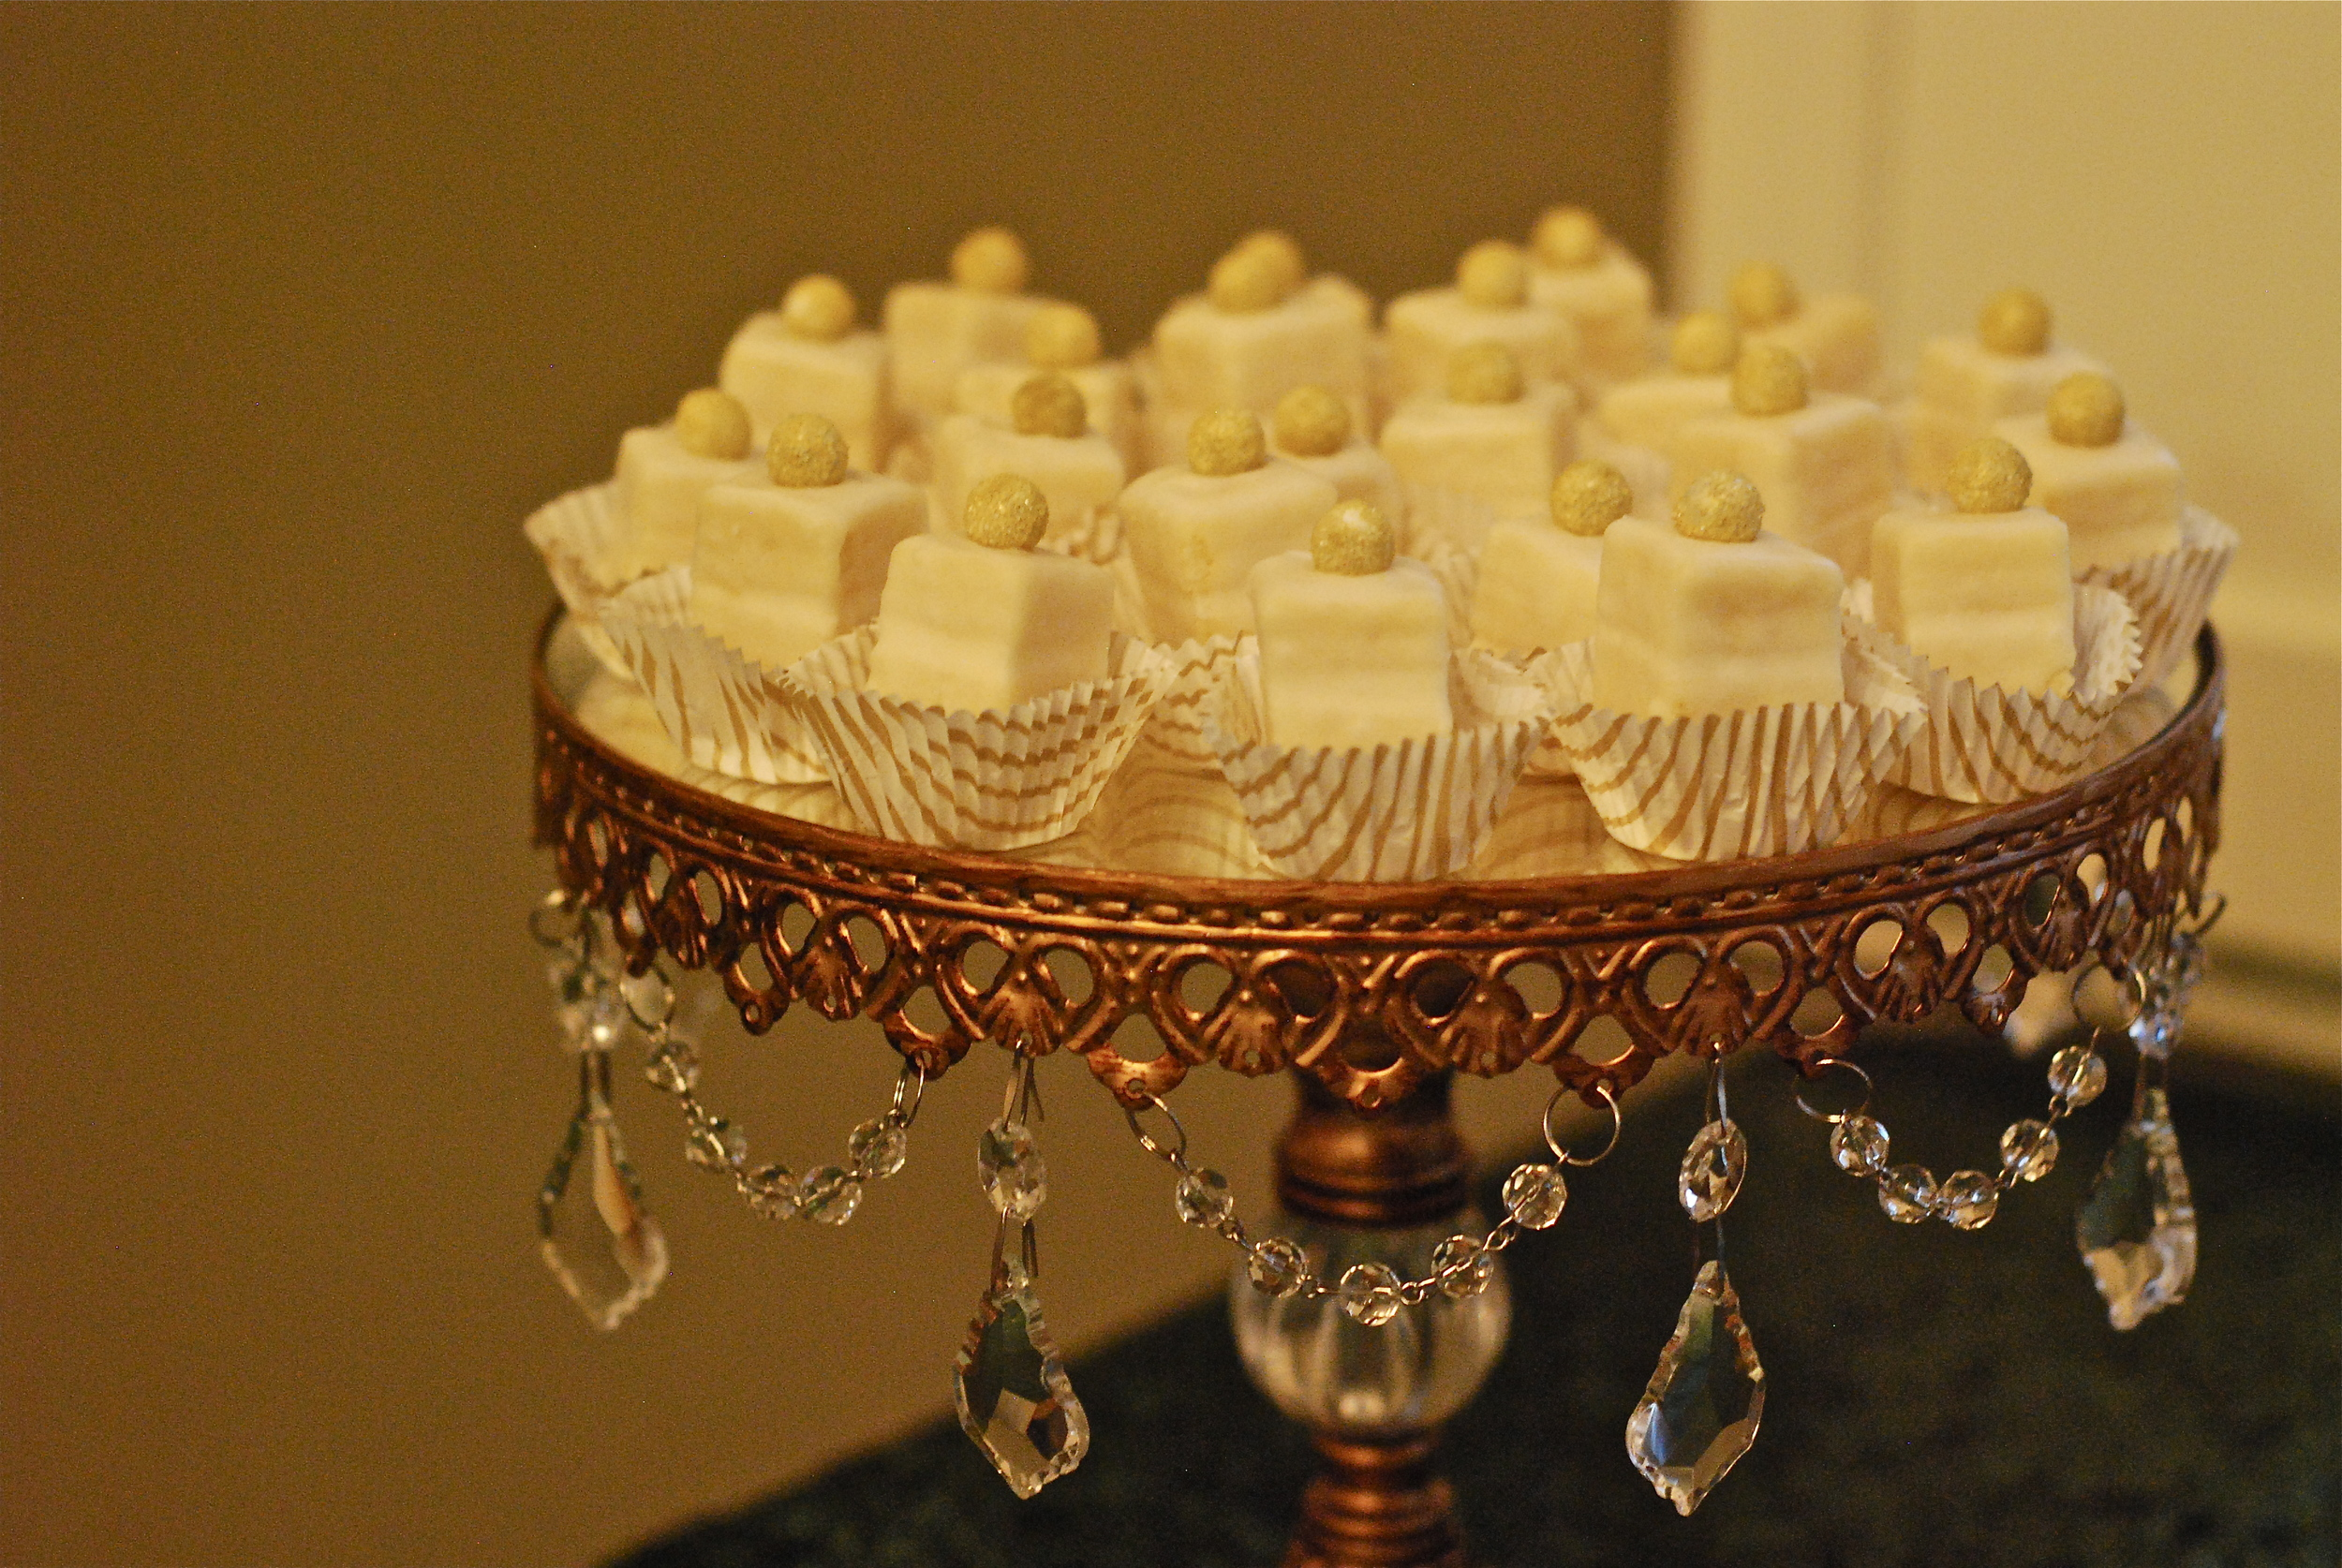 Vanilla petite fours topped with golden sanding sugared chocolate candies.